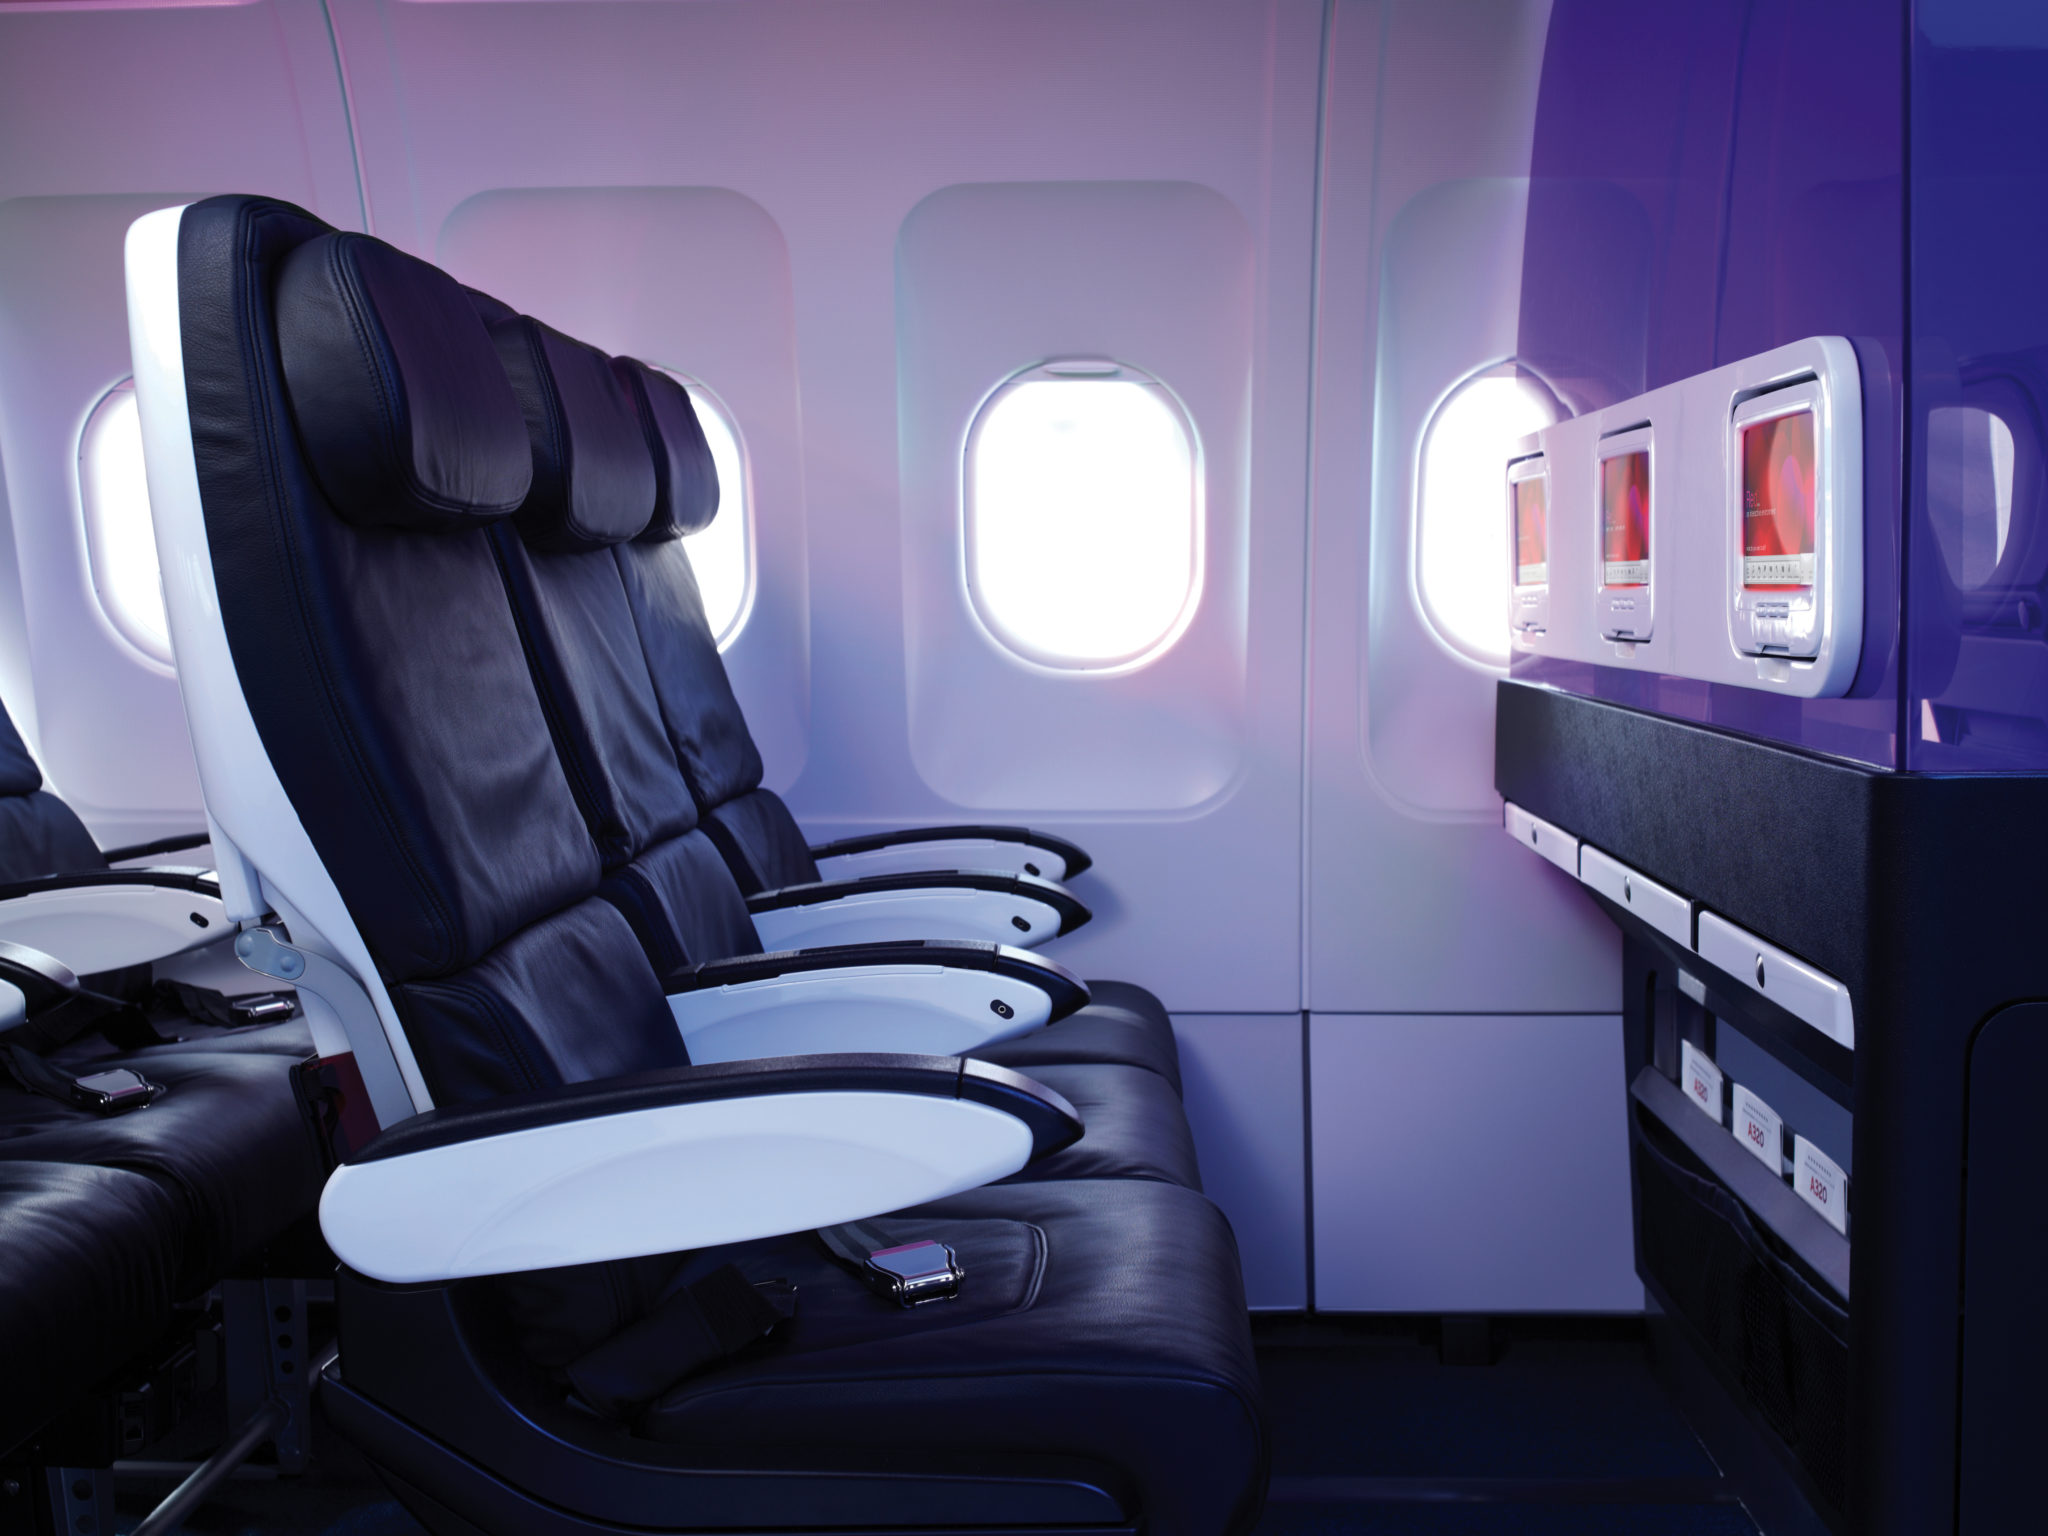 Virgin America's Main Cabin. Image: Virgin America